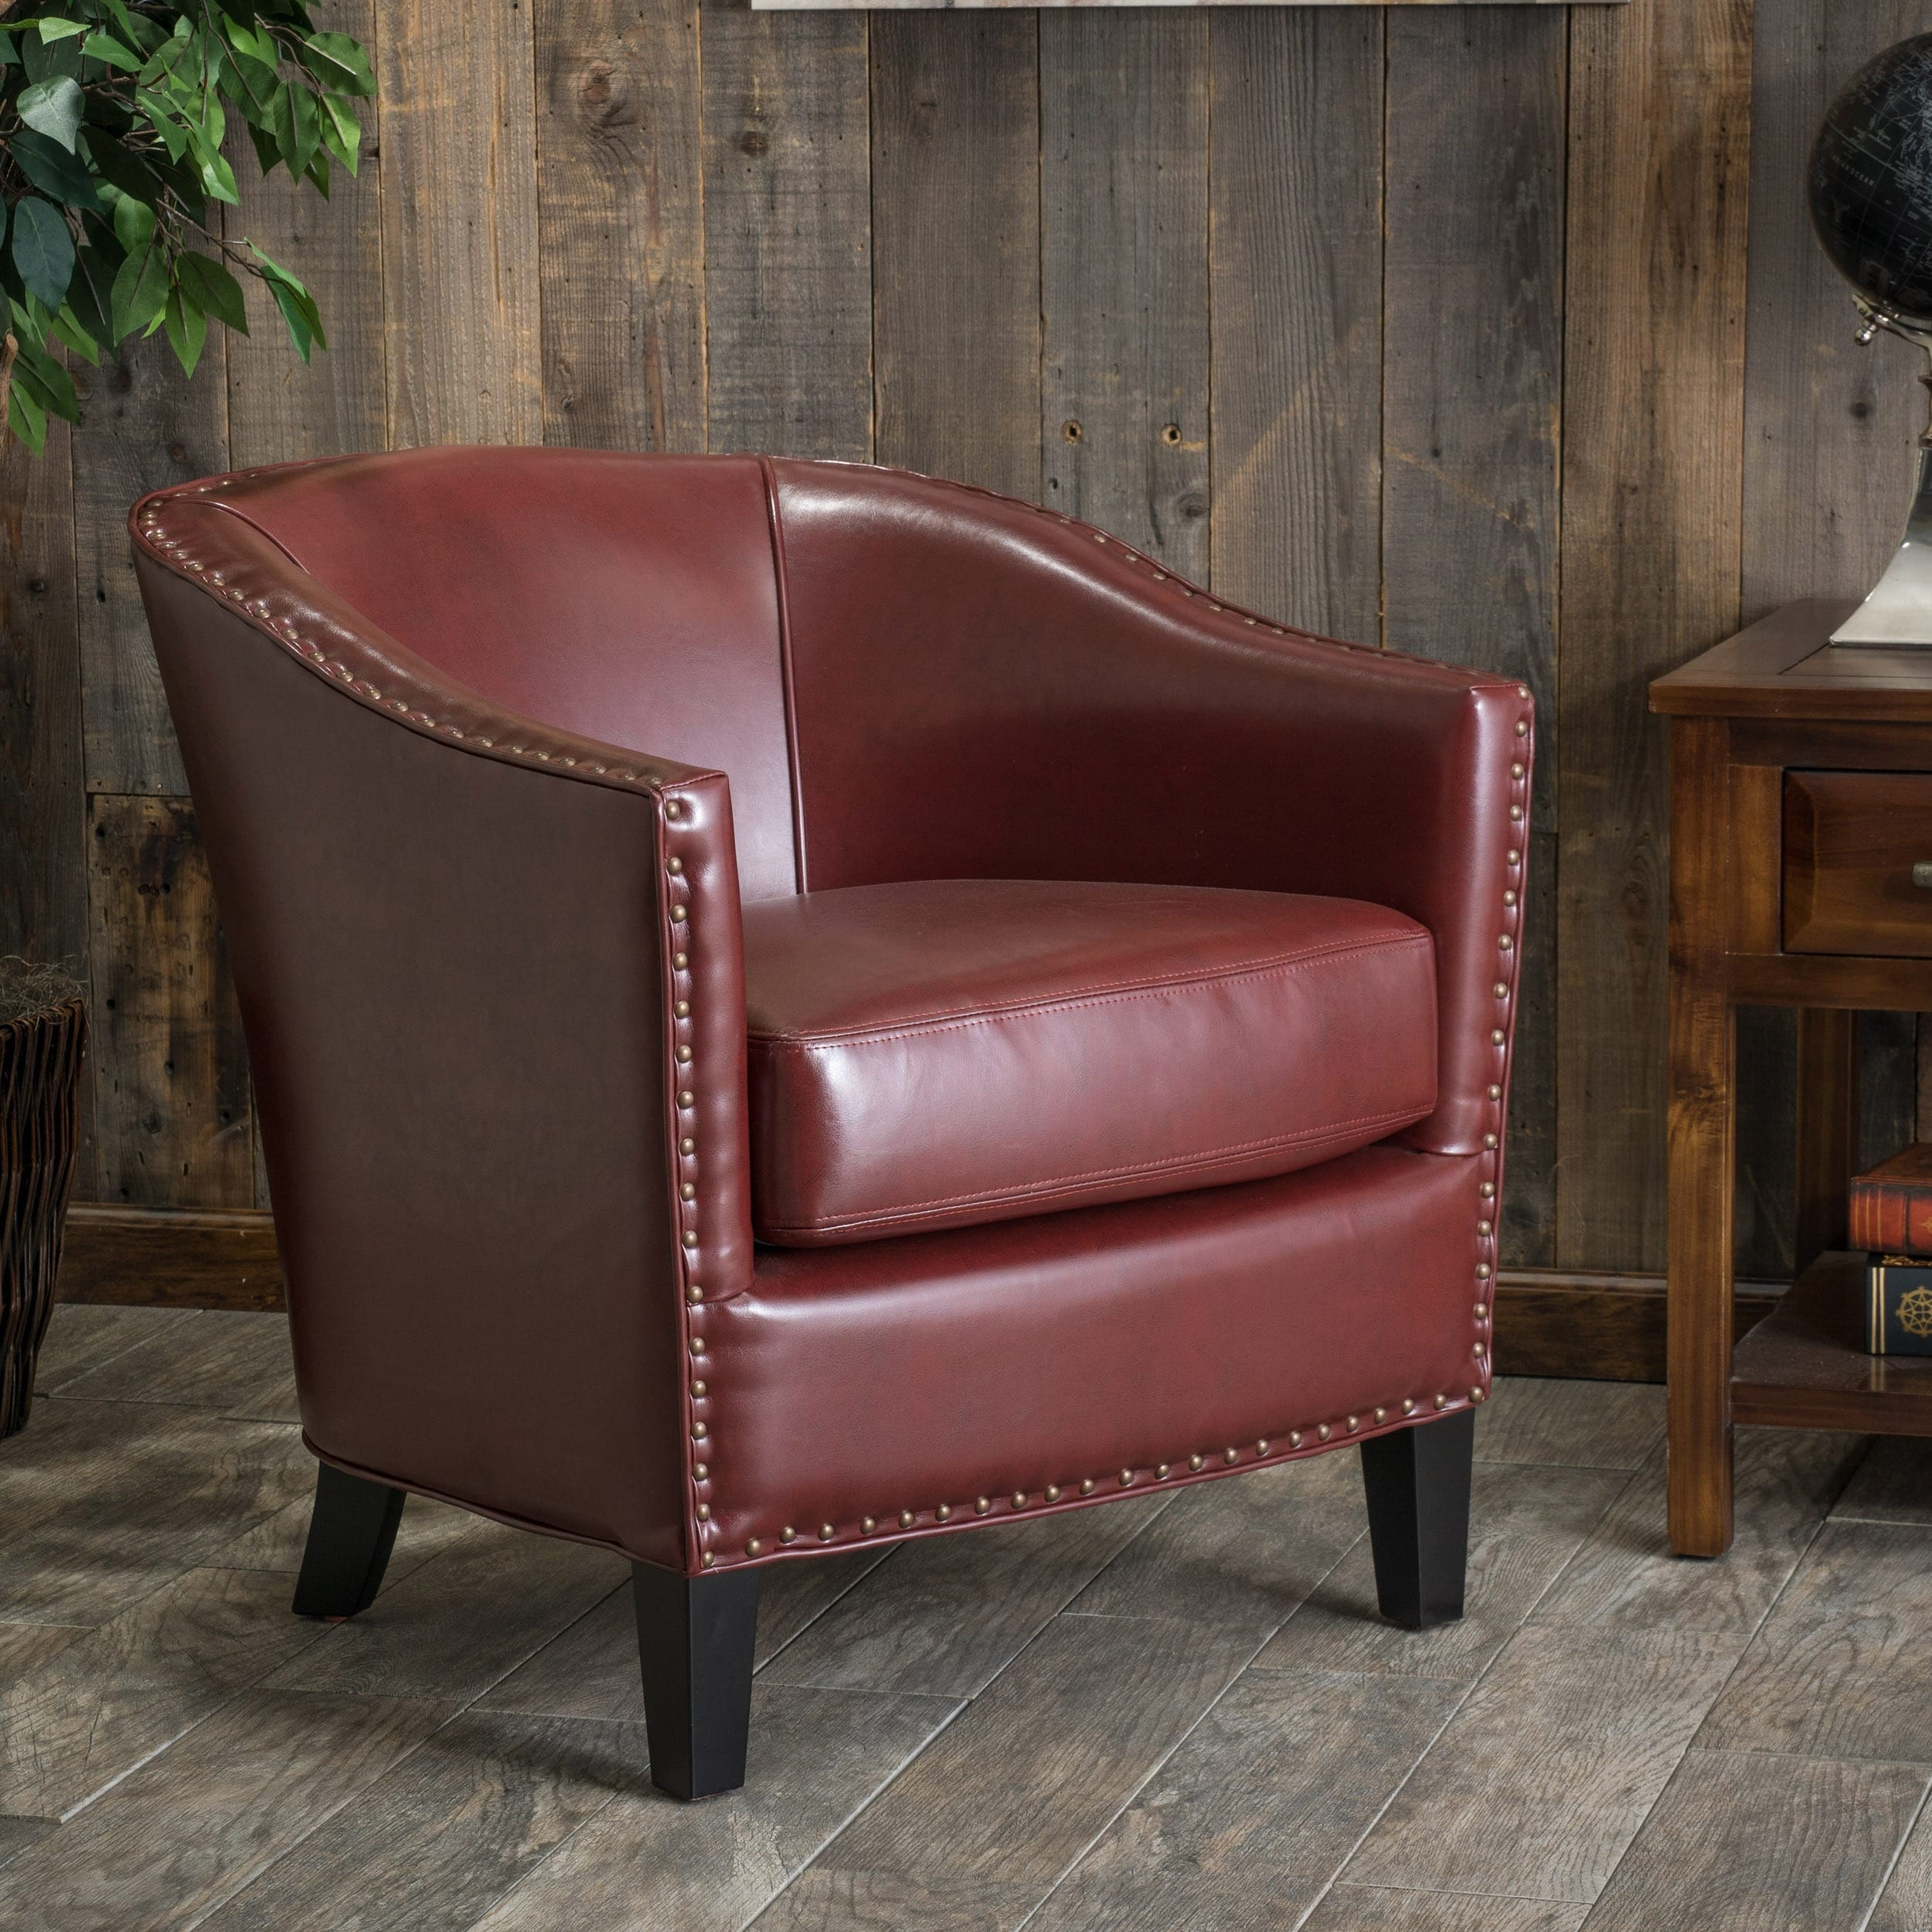 christopher knight club chair sun lounge chairs home austin oxblood red leather